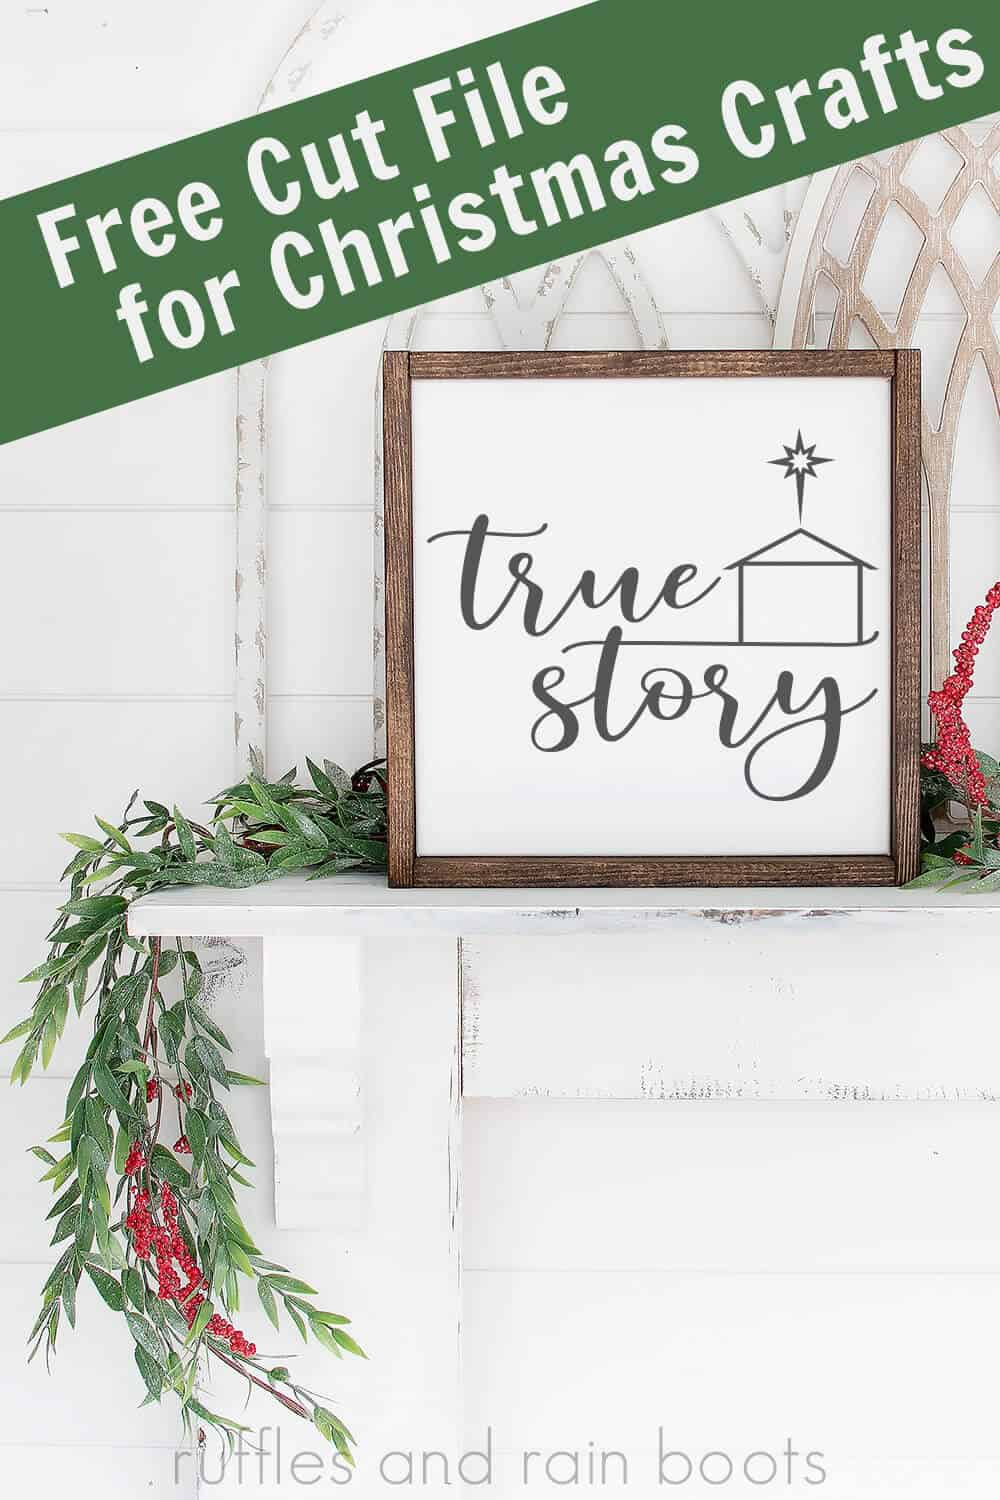 white frame with true story svg sitting on white wall and white fireplace mantle with greenery with text which reads free cut file for Christmas crafts